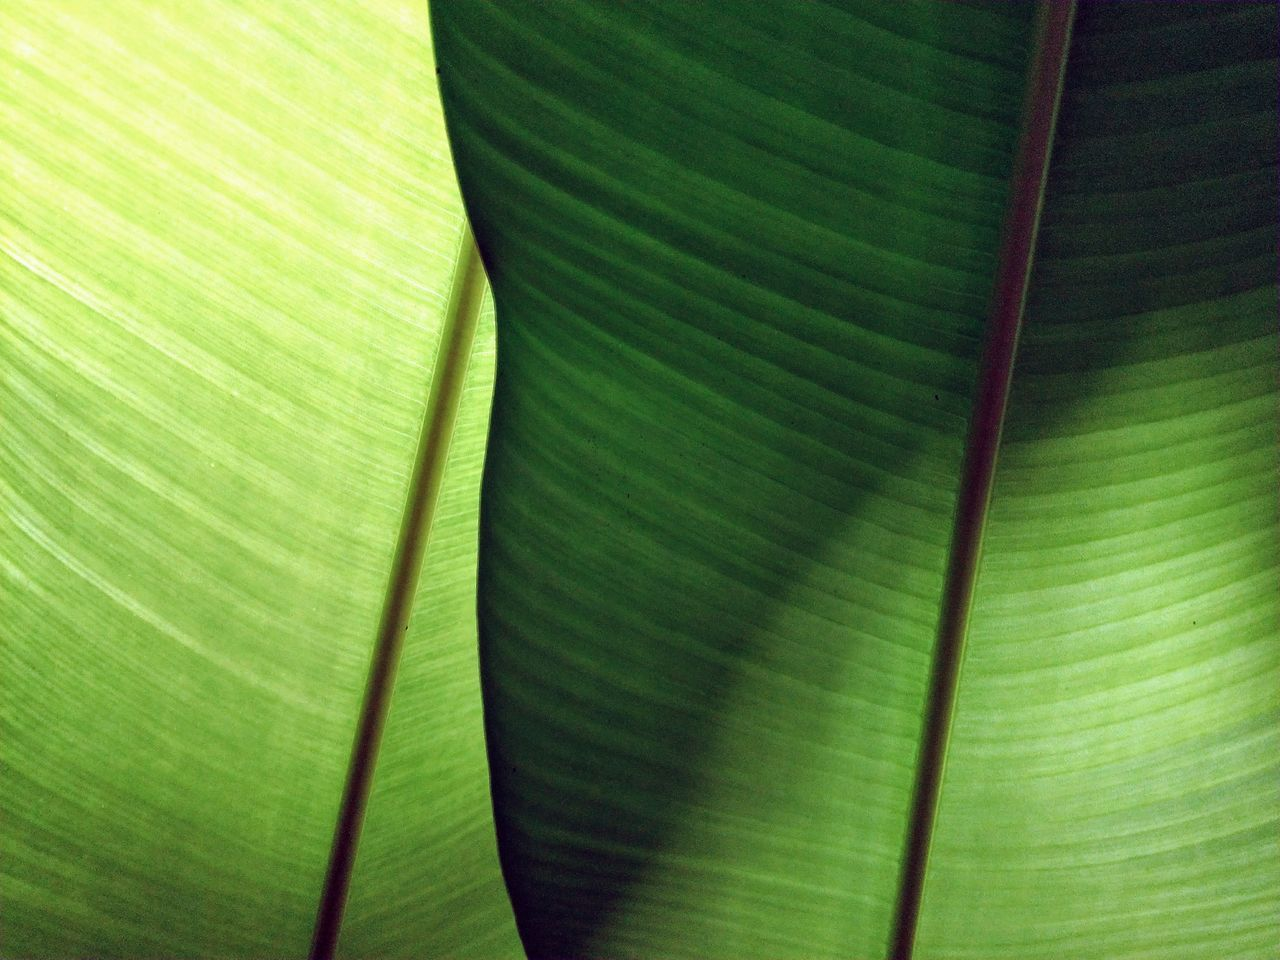 leaf, green color, banana leaf, textured, backgrounds, palm leaf, banana tree, close-up, full frame, no people, abstract, frond, nature, pattern, day, palm tree, growth, outdoors, tree